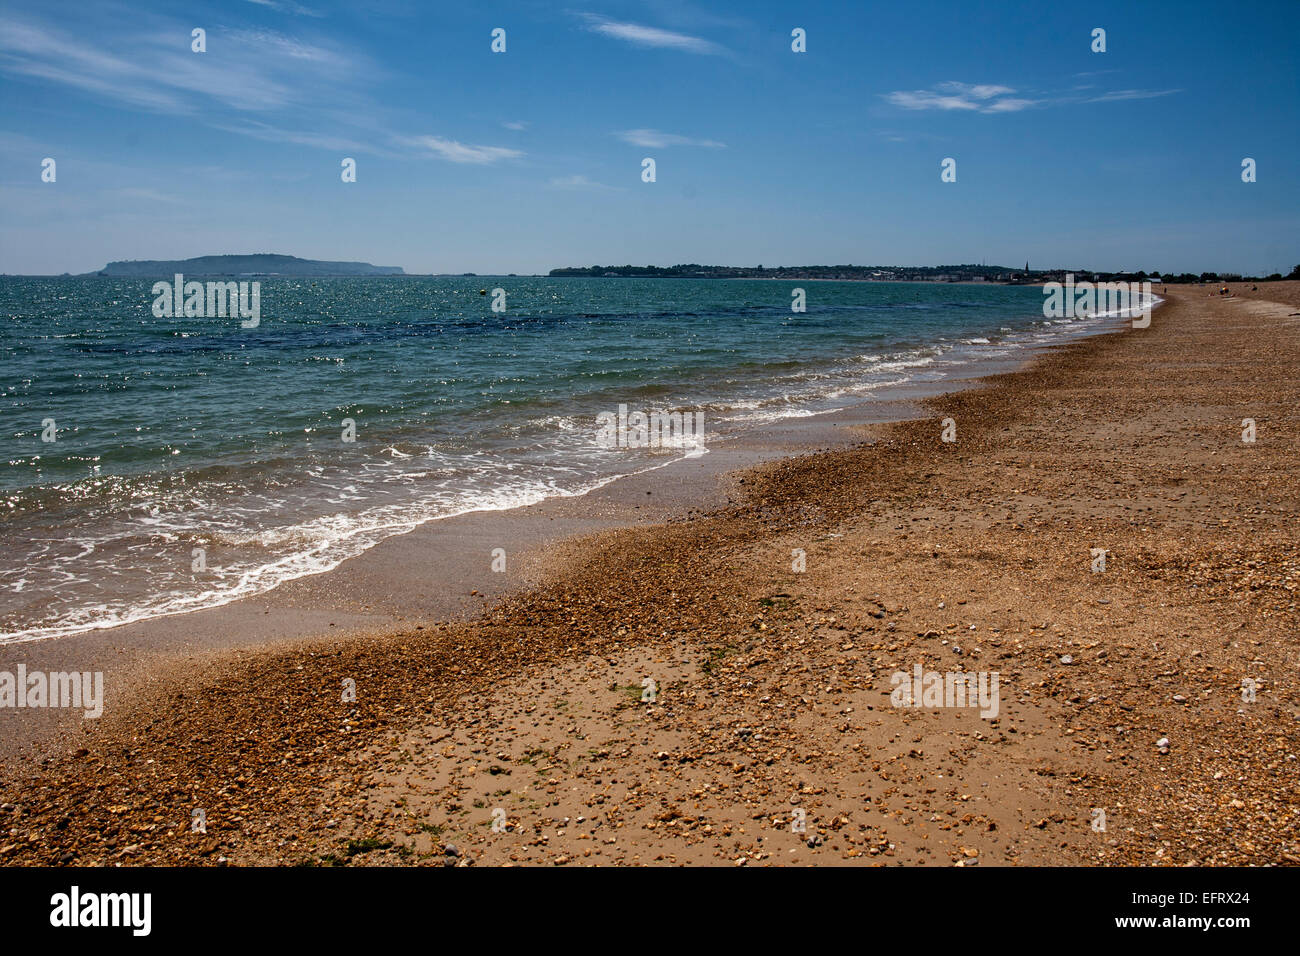 stony beach in the summer with blue sea and sky - Stock Image